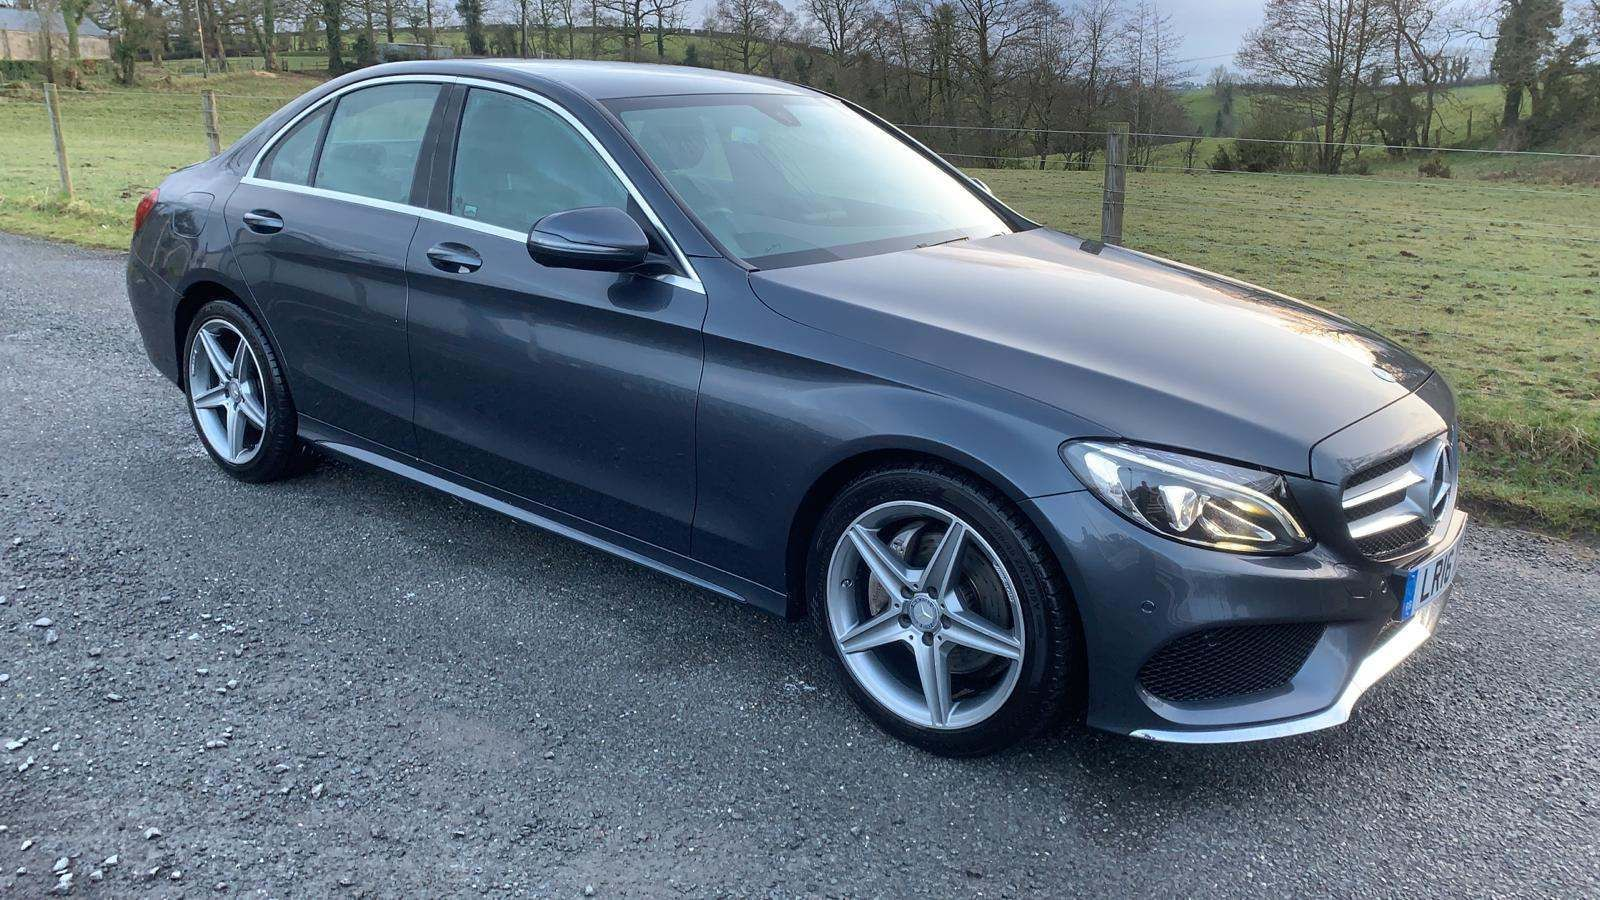 2016 MERCEDES BENZ C Class 2.1 C220d AMG Line 7G-Tronic+ (s/s) Diesel Automatic Heated Front Seats&Windscreen – J R S Commercials And Cars Dungannon